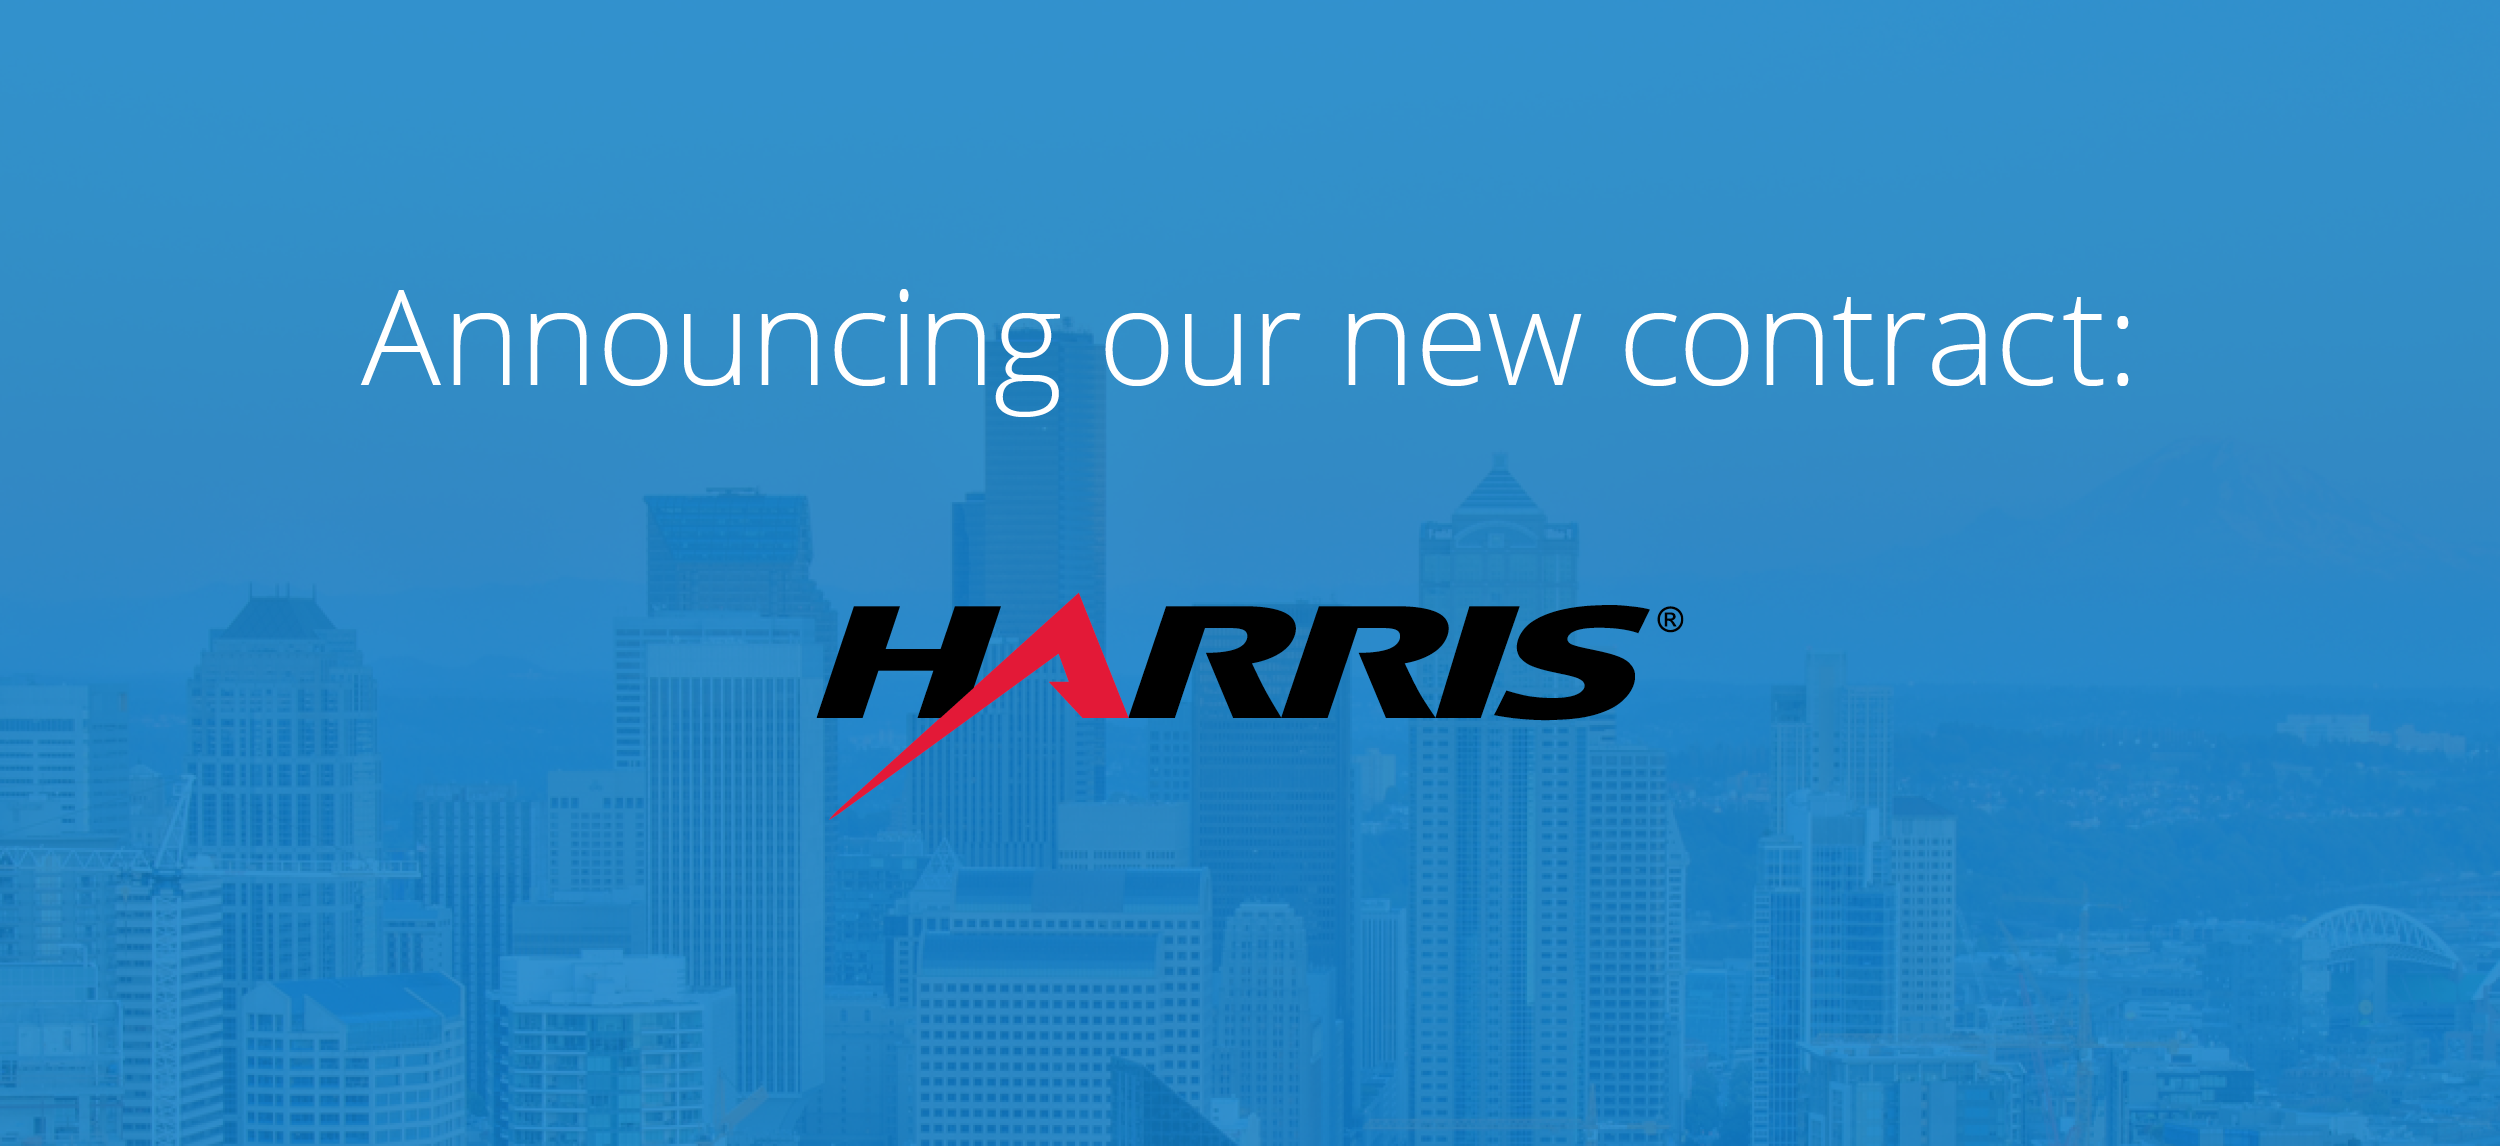 Announcing Harris Corporation: Our Newest Contract